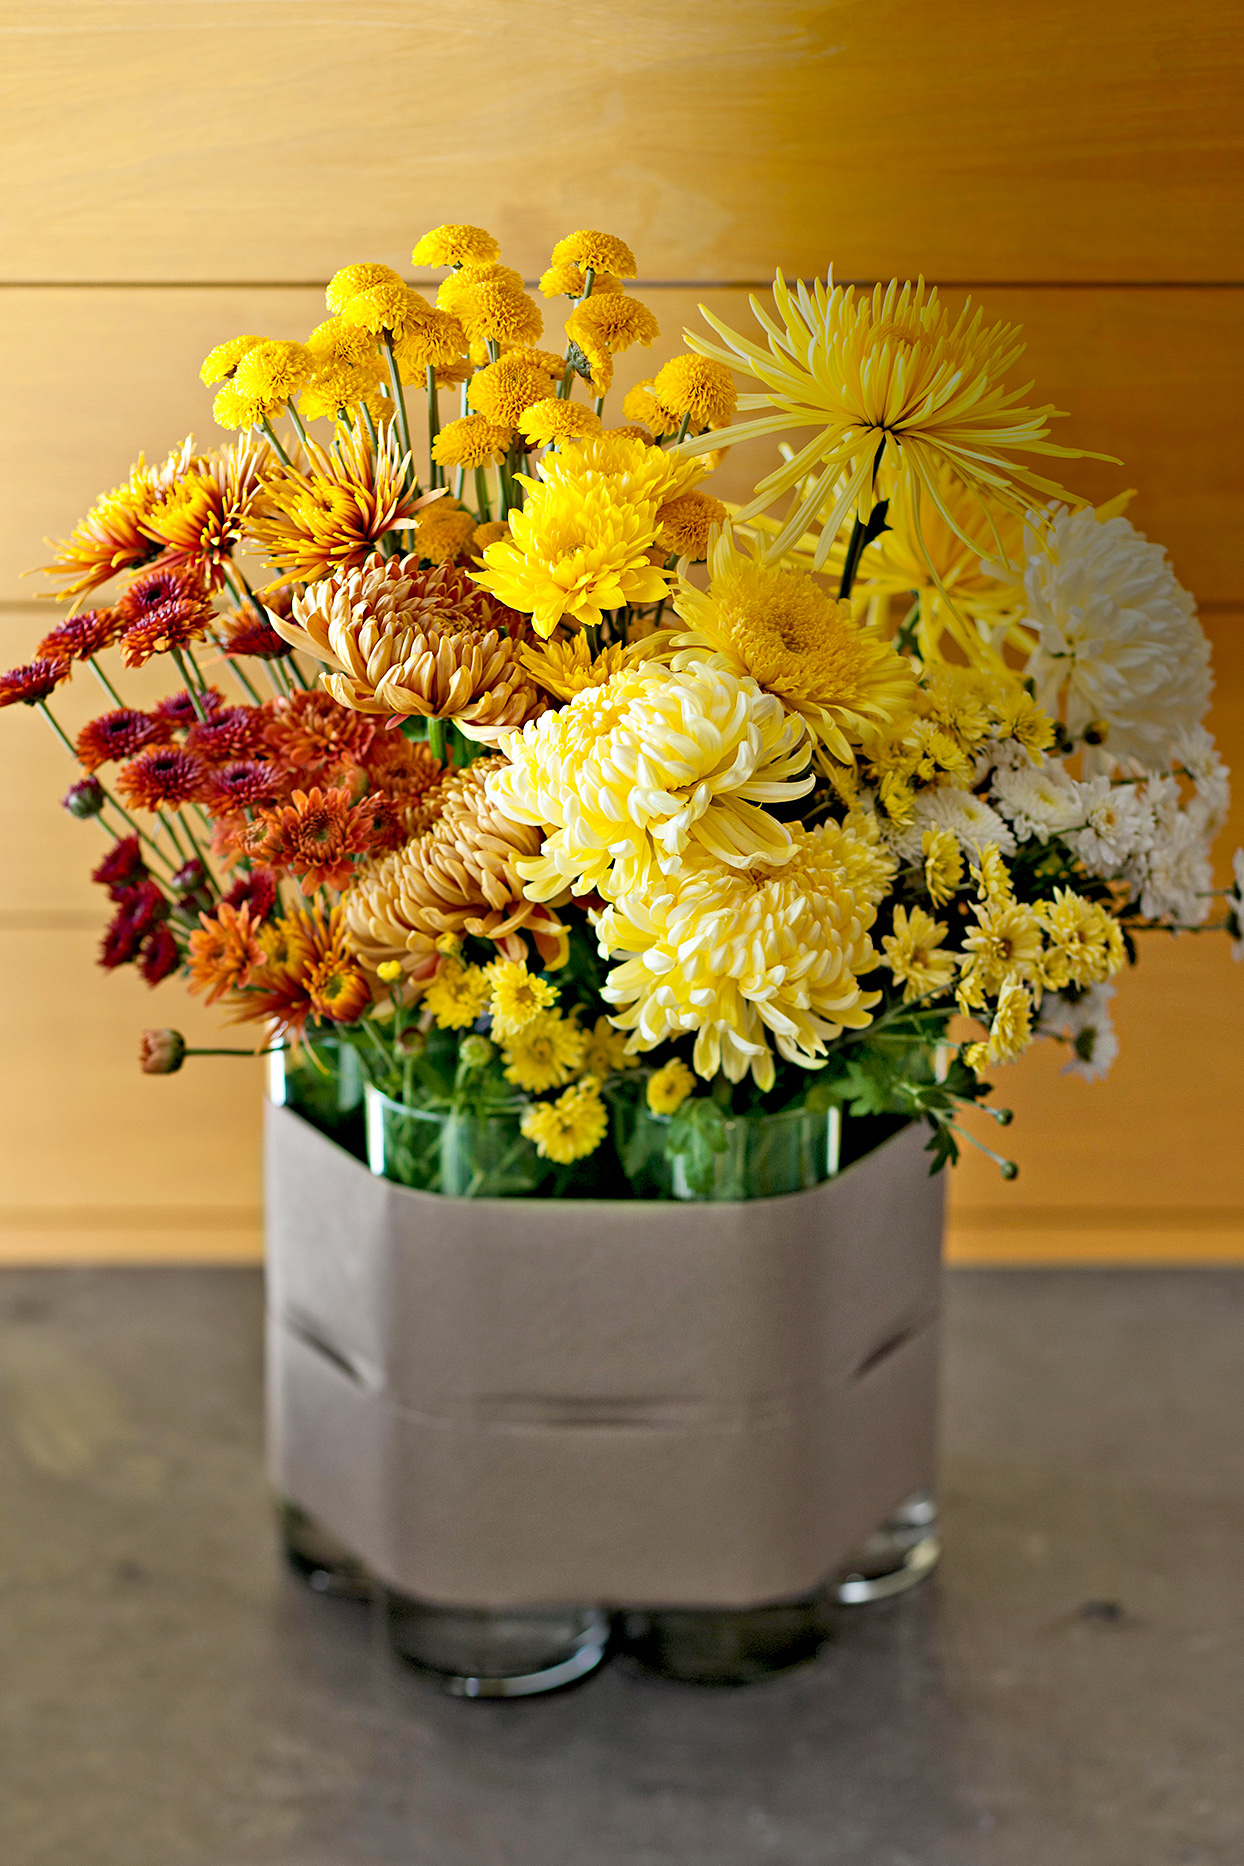 Yellow, orange, and red flowers in multiple vases tied together